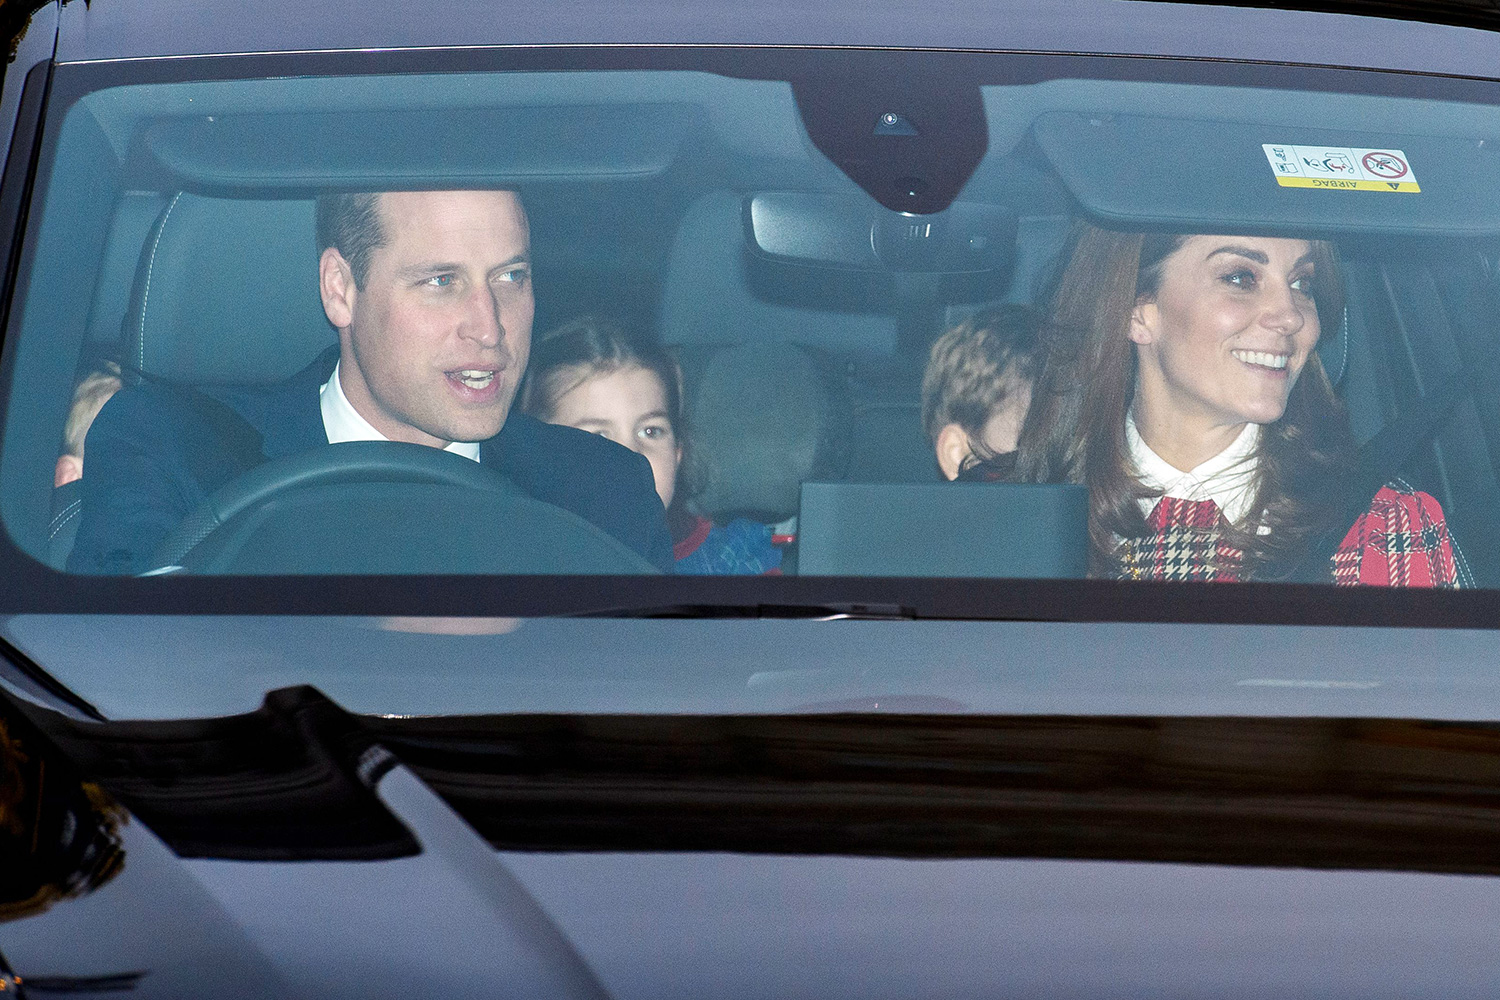 Prince William with Prince George and Catherine Duchess of Cambridge Royal family Christmas Lunch at Buckingham Palace, London, UK - 18 Dec 2019